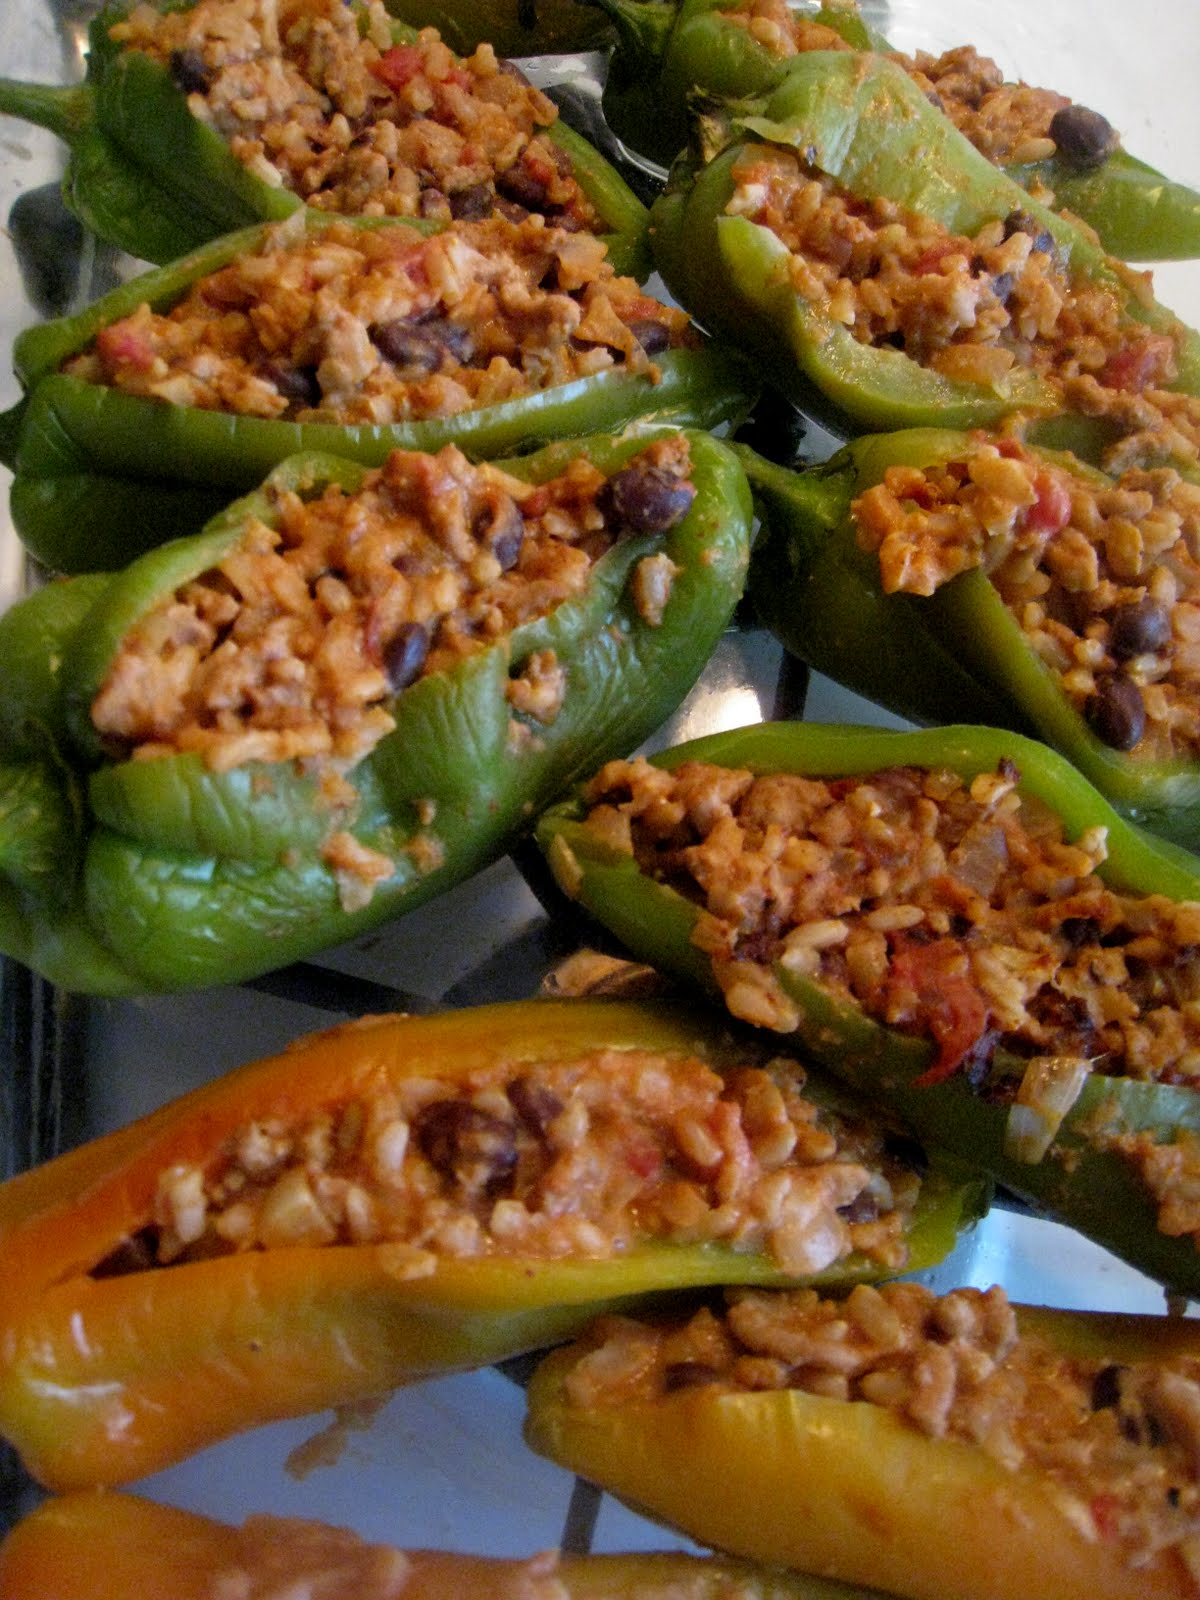 Chili Relleno Recipe – Cuban Style